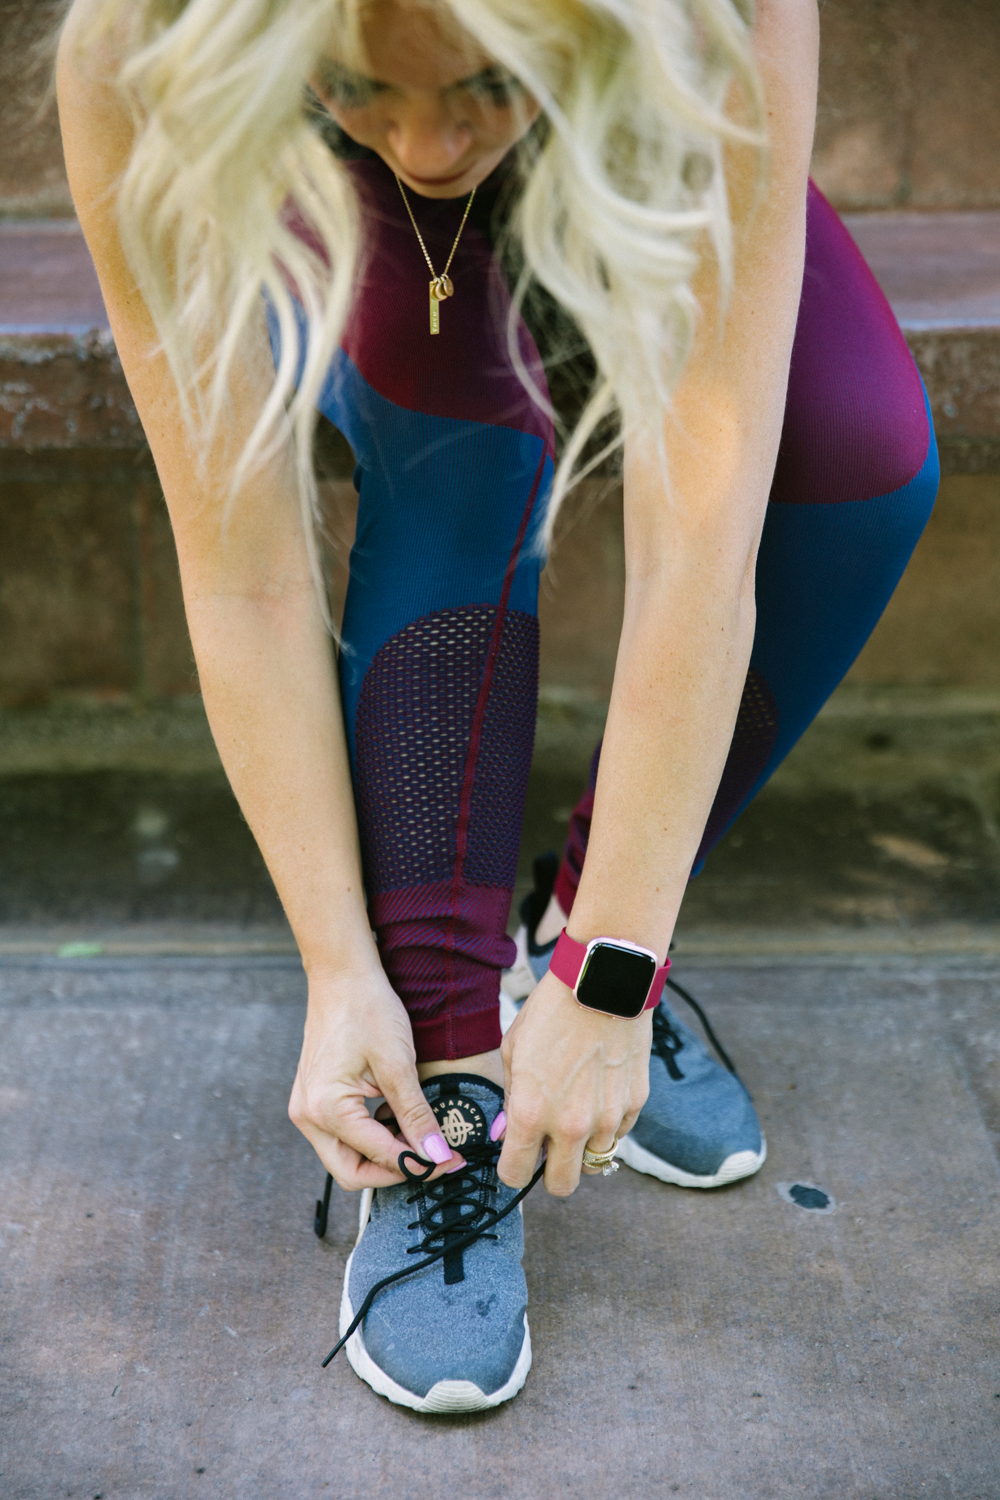 How to stay Fit with FitBit Versa by popular Las Vegas lifestyle blog, Life of a Sister